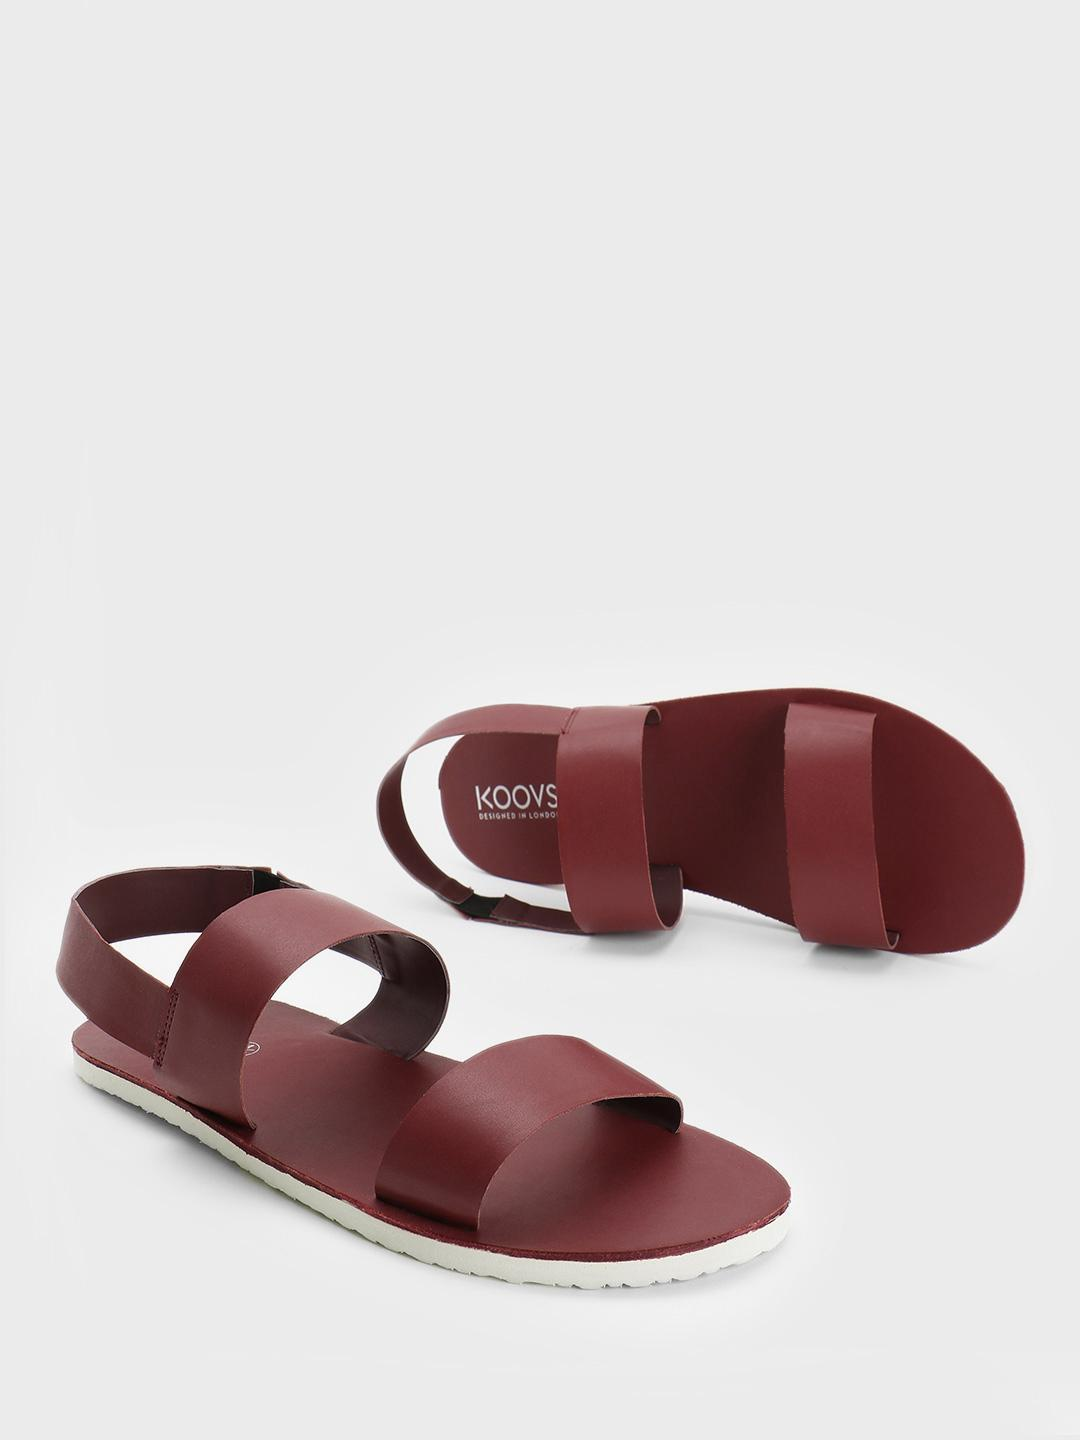 KOOVS Burgundy Double Strap Slingback Sandals 1